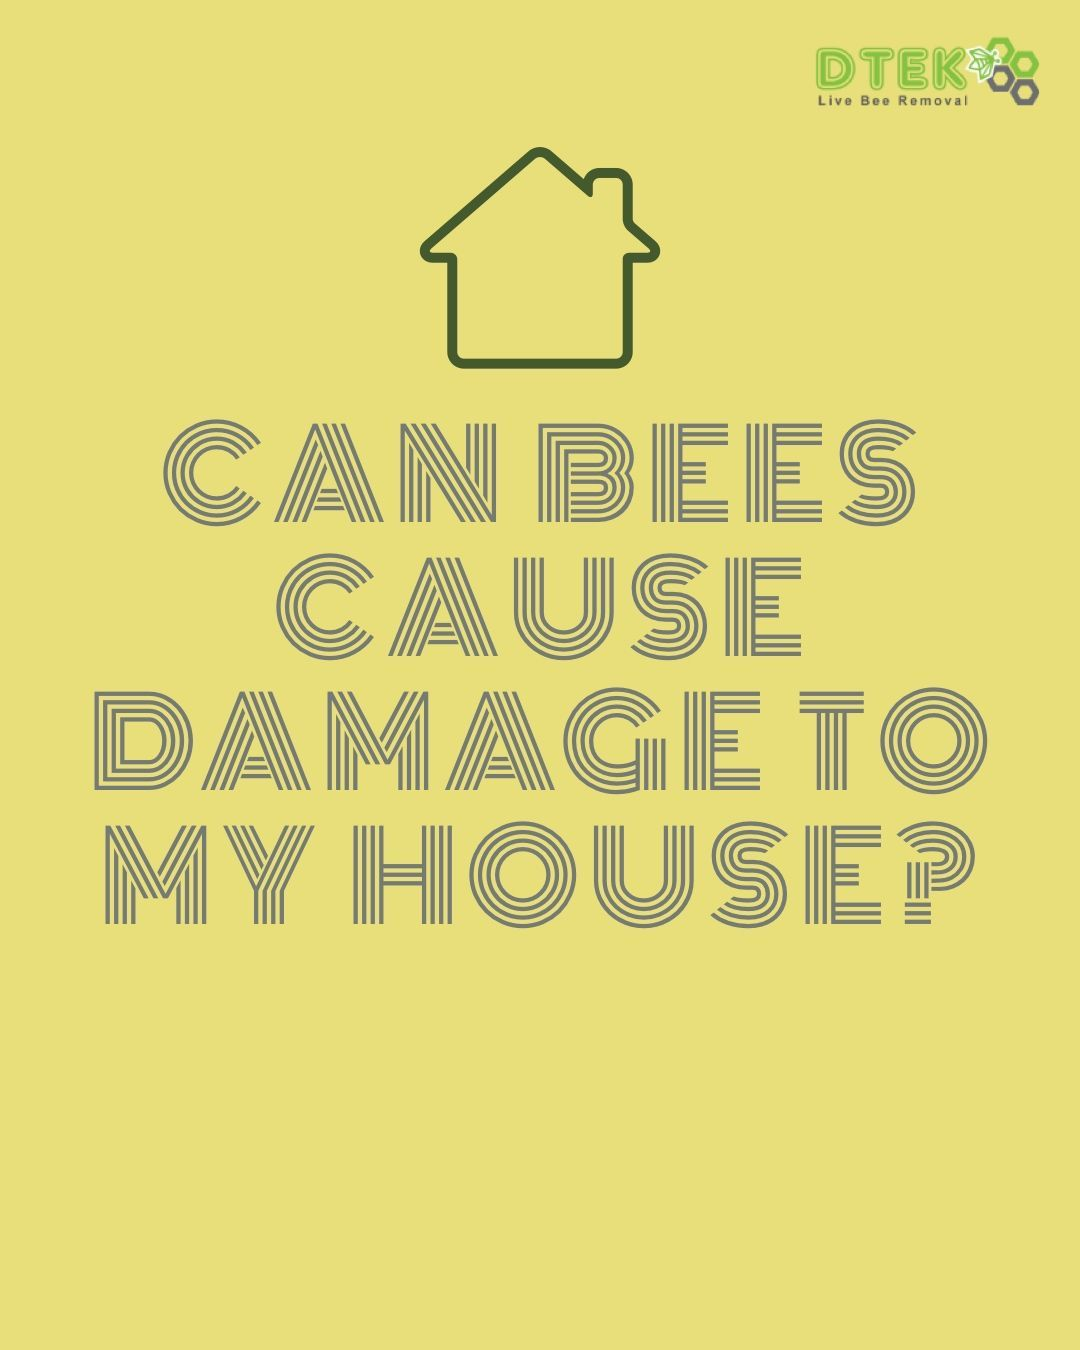 Yes they can and quite significantly. The honey can seep